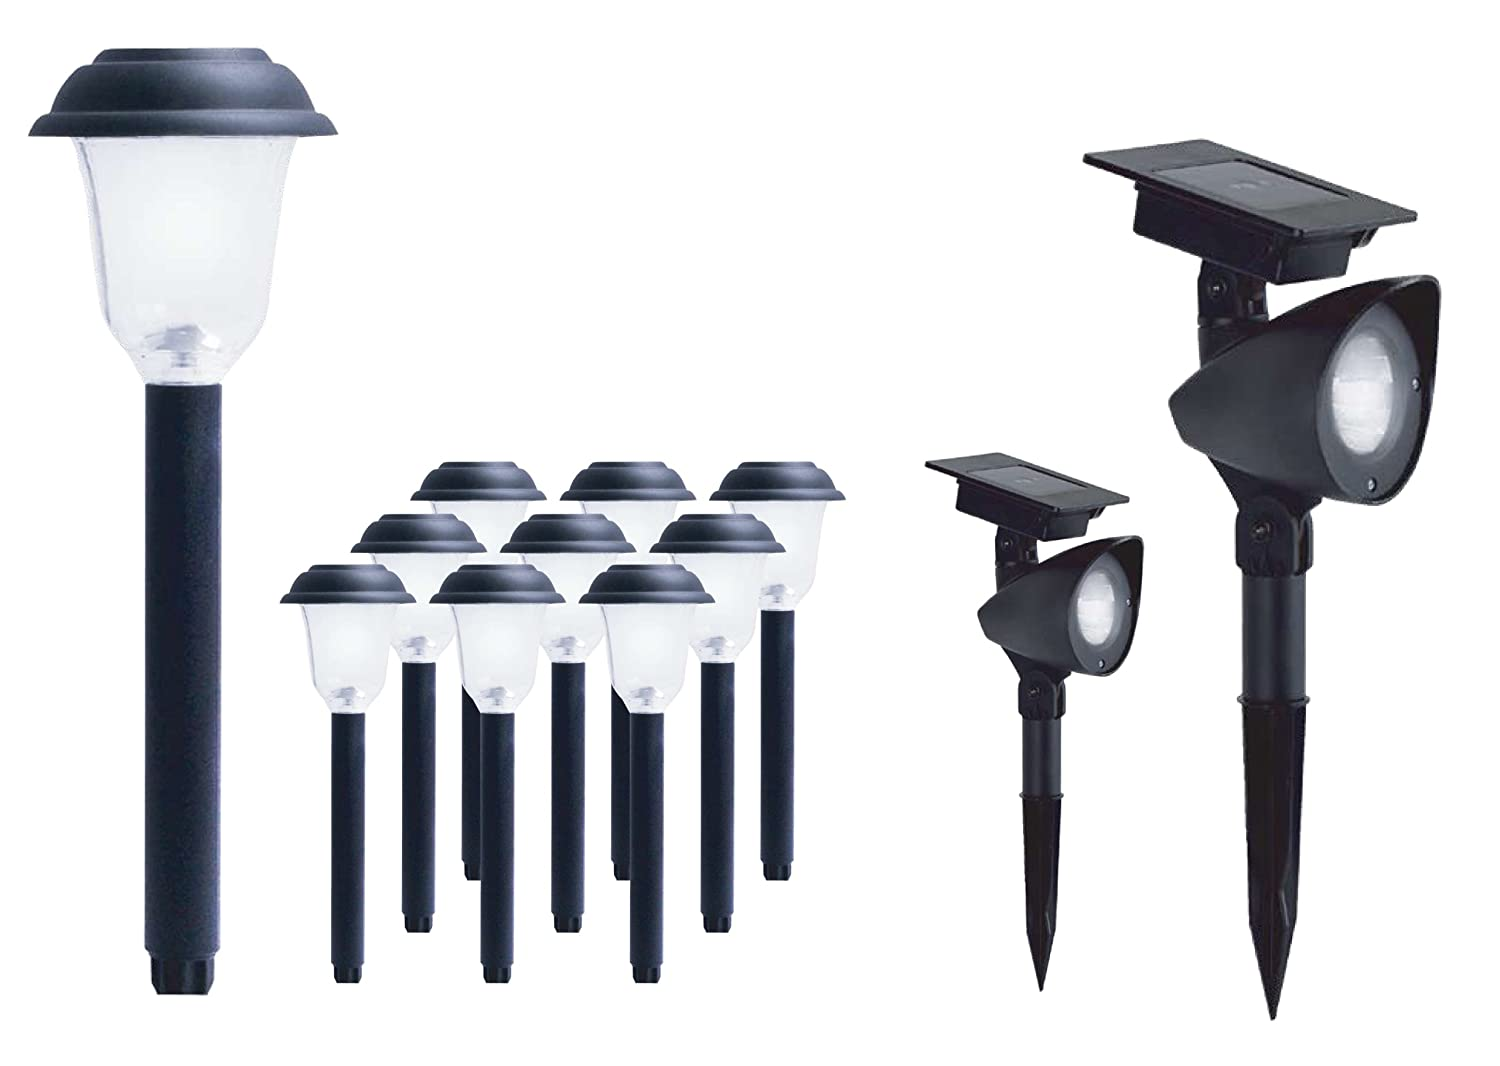 LED Solar Pathway & Spotlight Kit, Combo Pack = 10 Pathway Lights ...